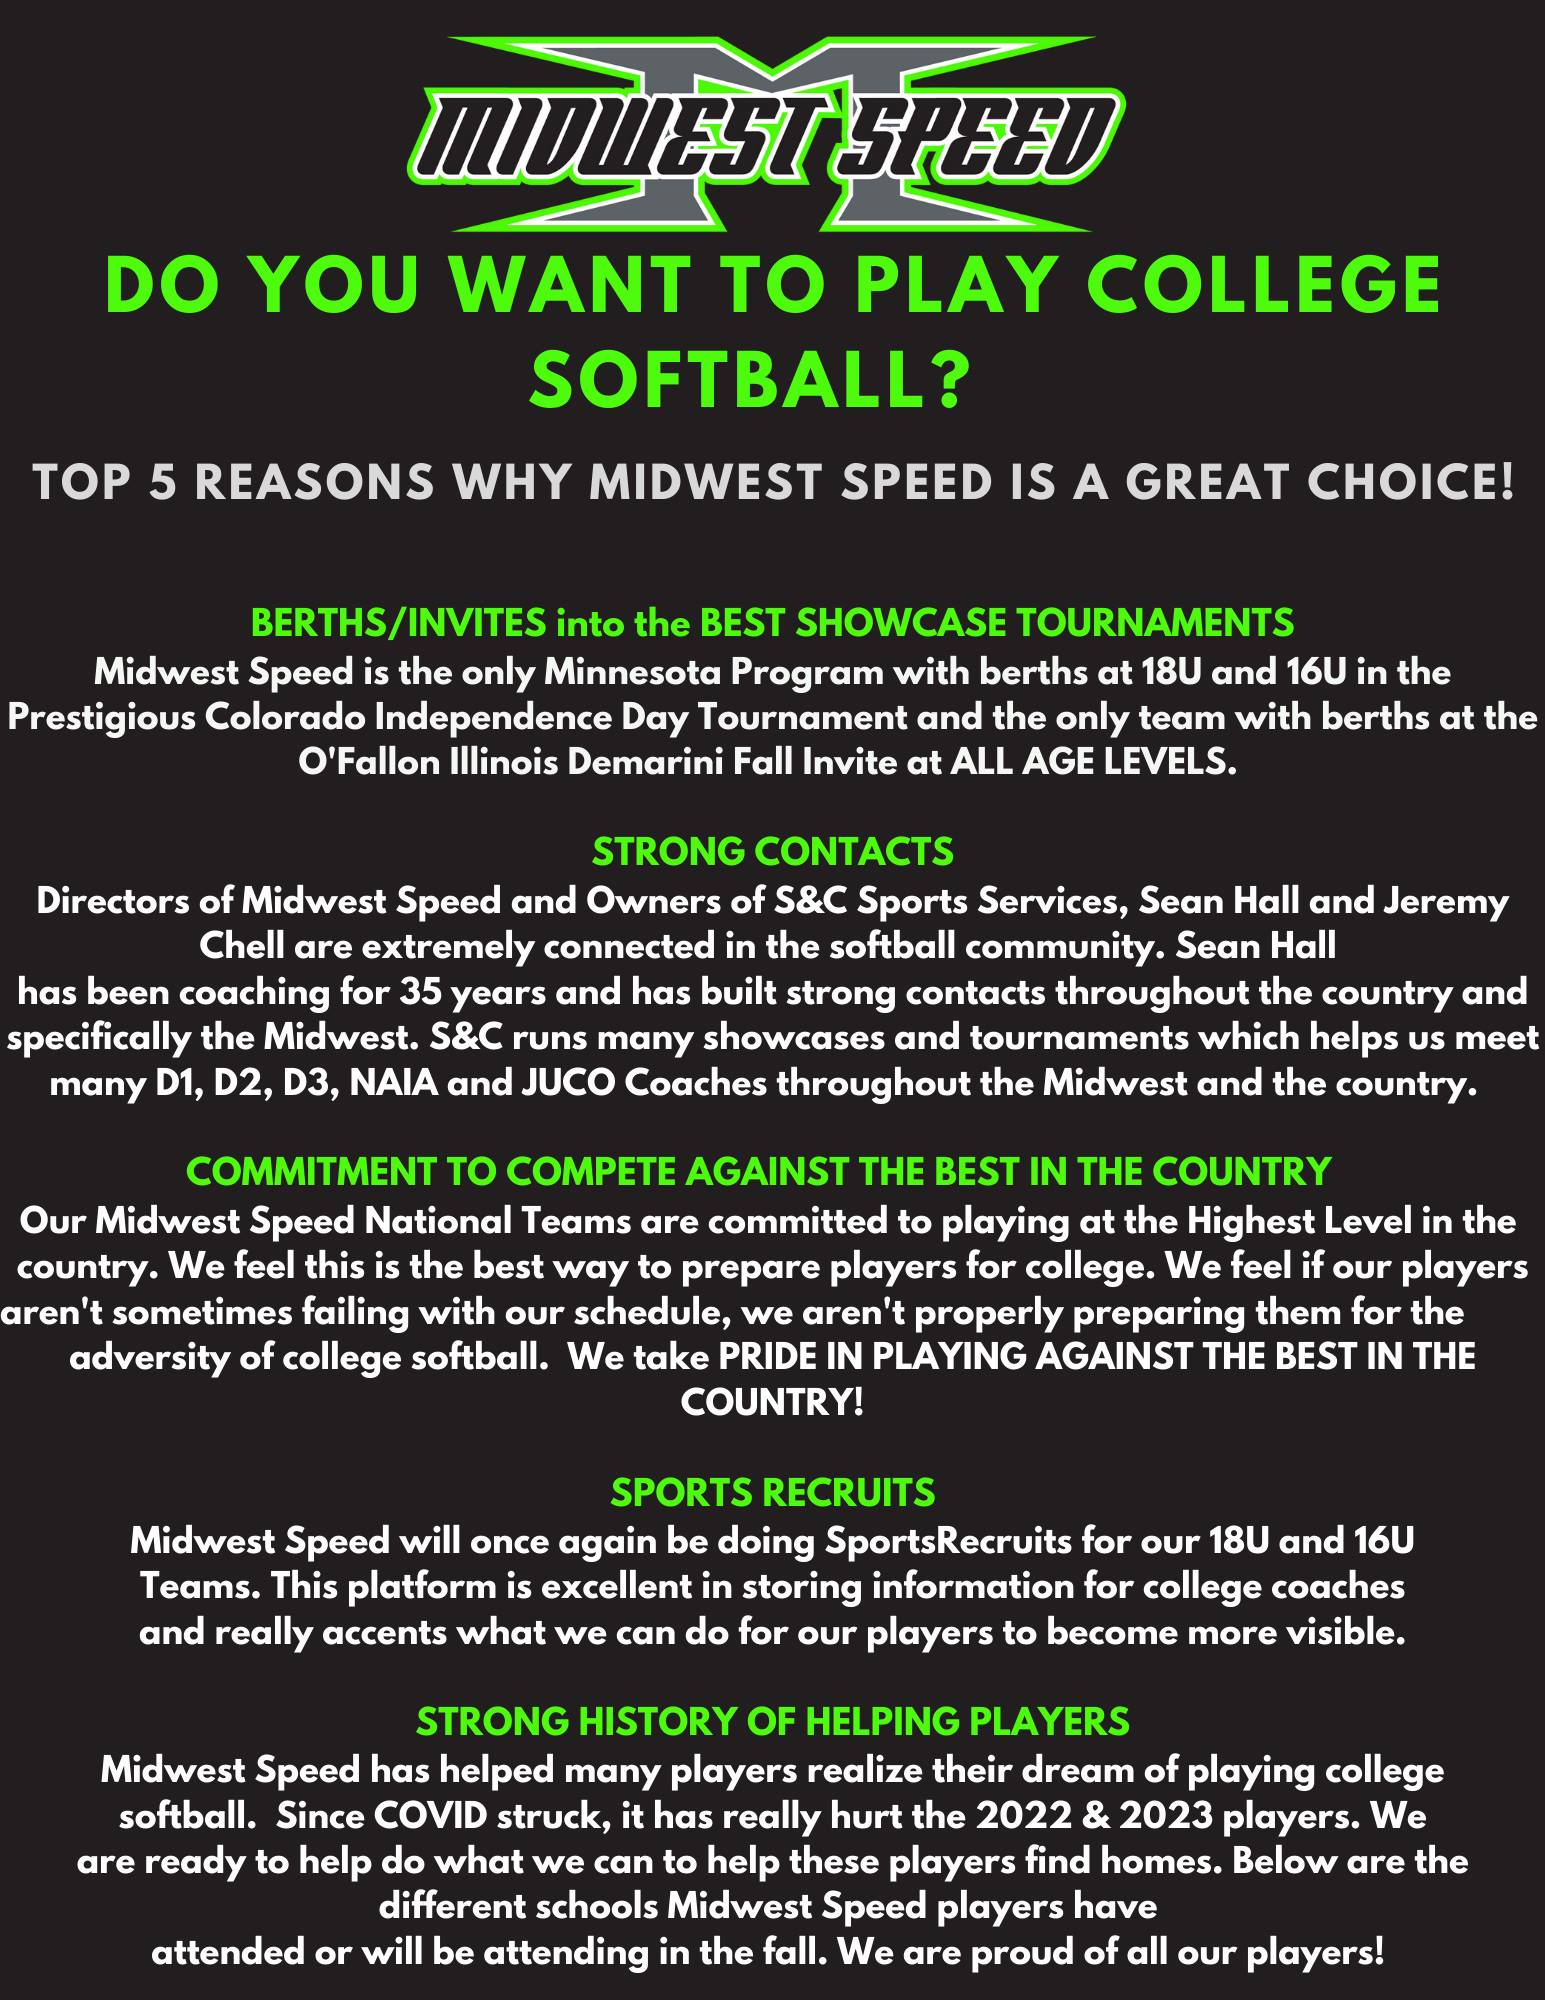 https://midwestspeedfastpitch.org/wp-content/uploads/2021/08/do-you-want-to-play-softball-flyer.jpg